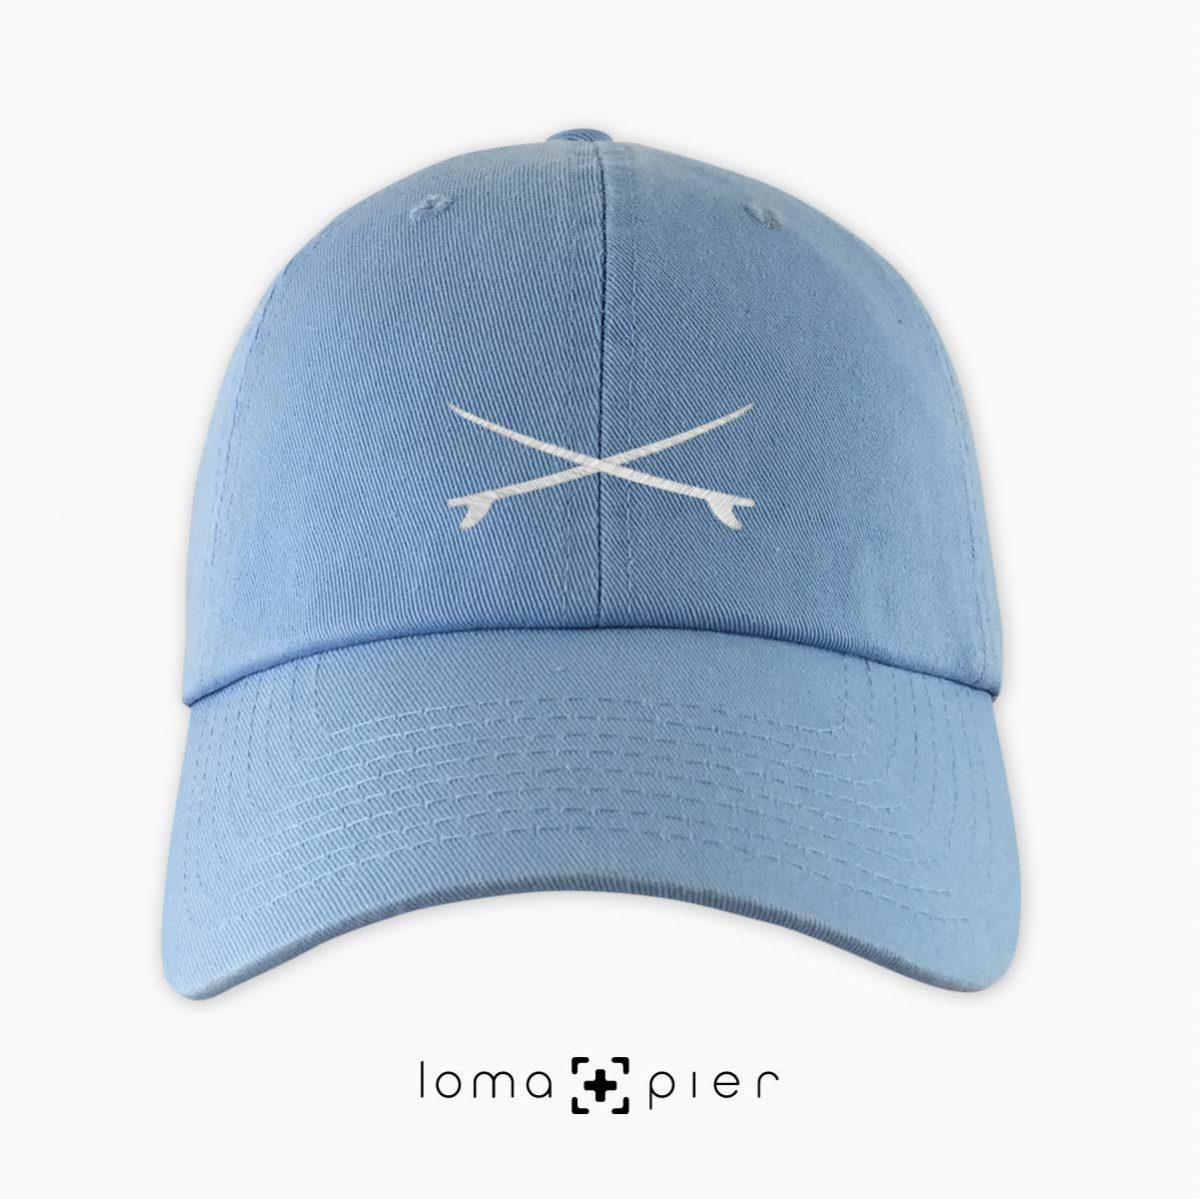 X MARKS THE SPOT icon embroidered on a light blue dad hat by loma+pier hat store made in the USA